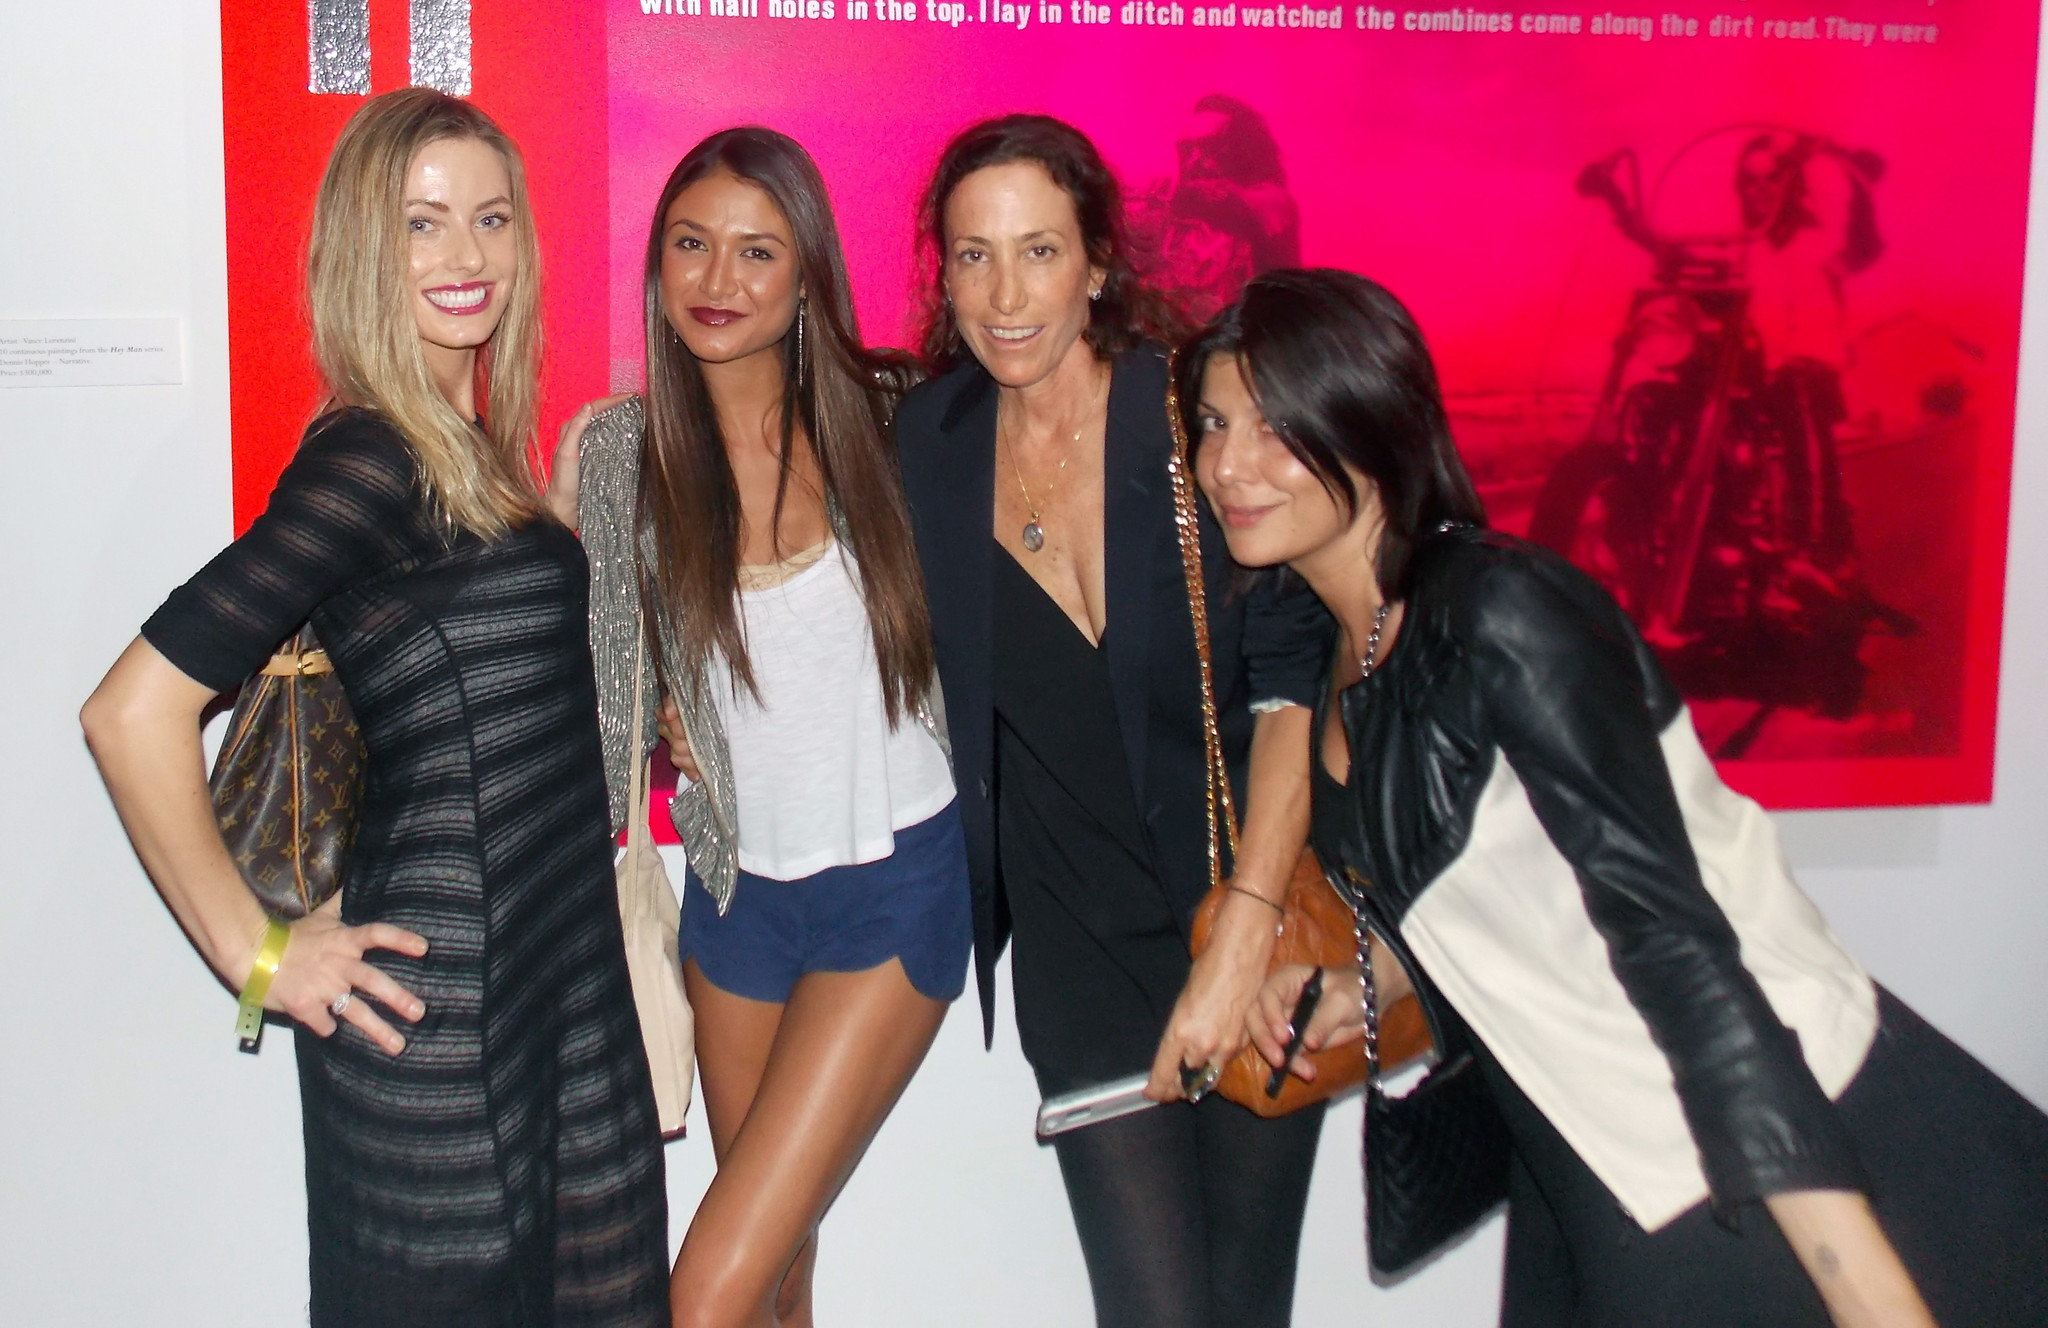 PHOTOS: The fashionistas of Art Basel - Fashionistas of Basel